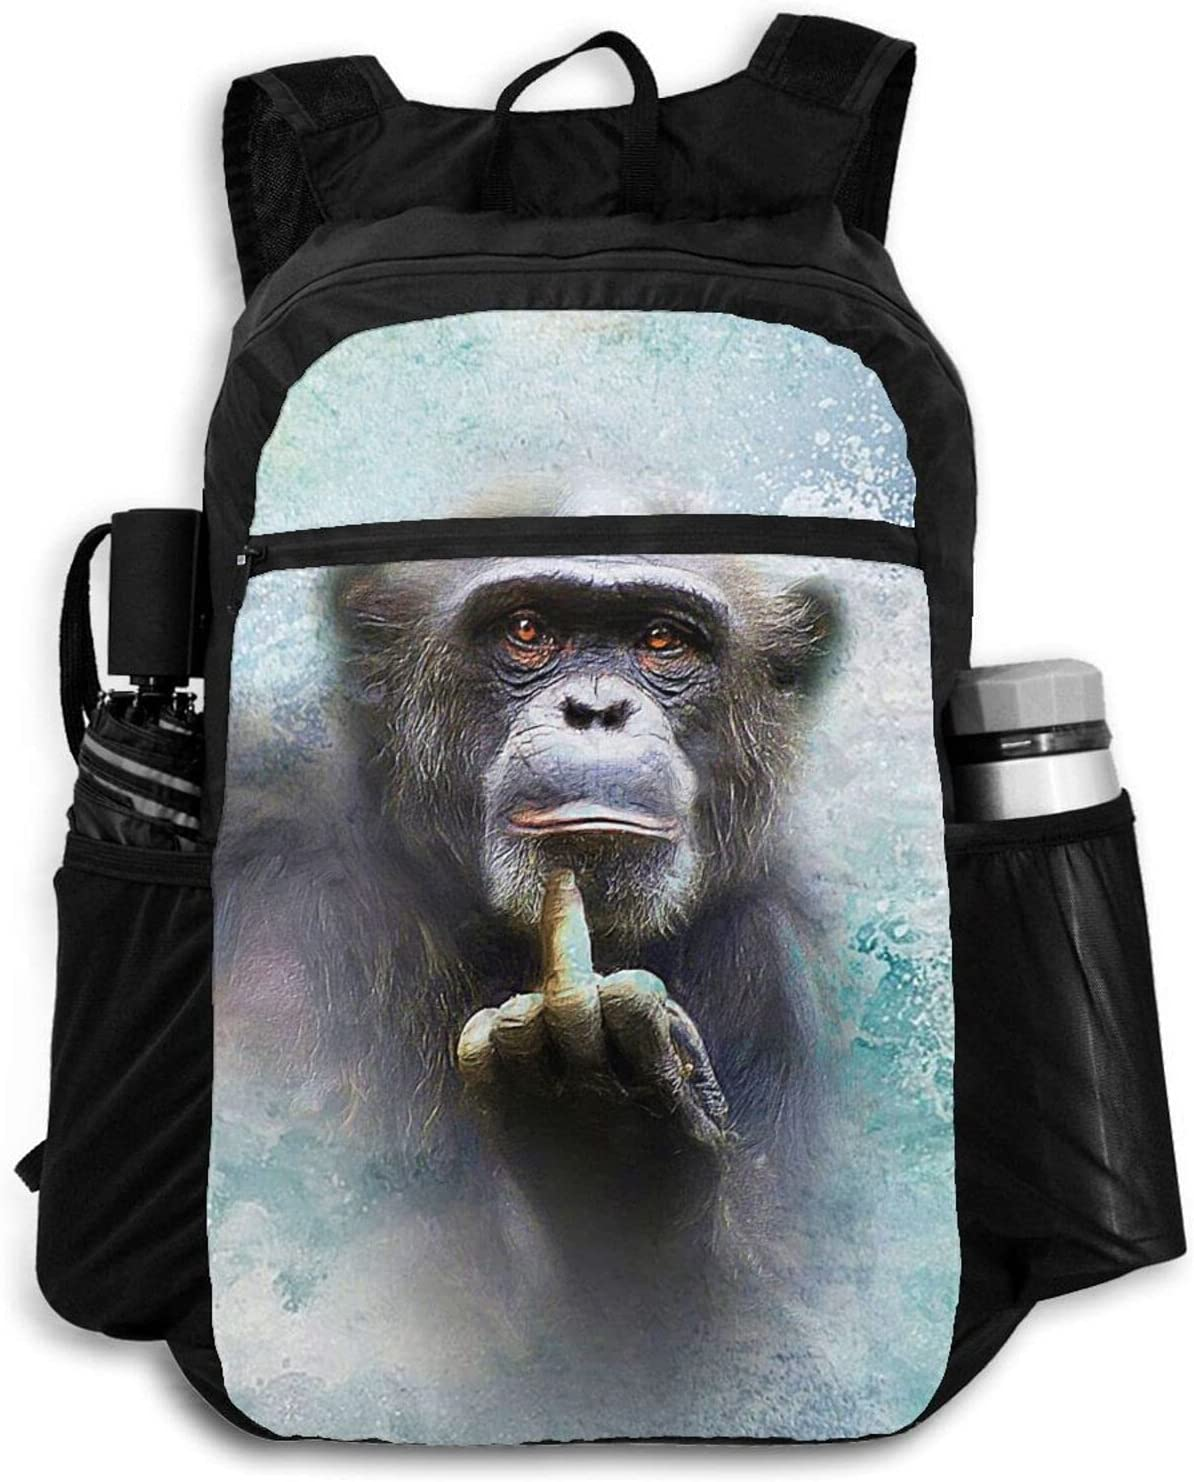 Zolama Funny trust Animal Chimpanzee Middle Women for Backpacks Max 87% OFF Finger